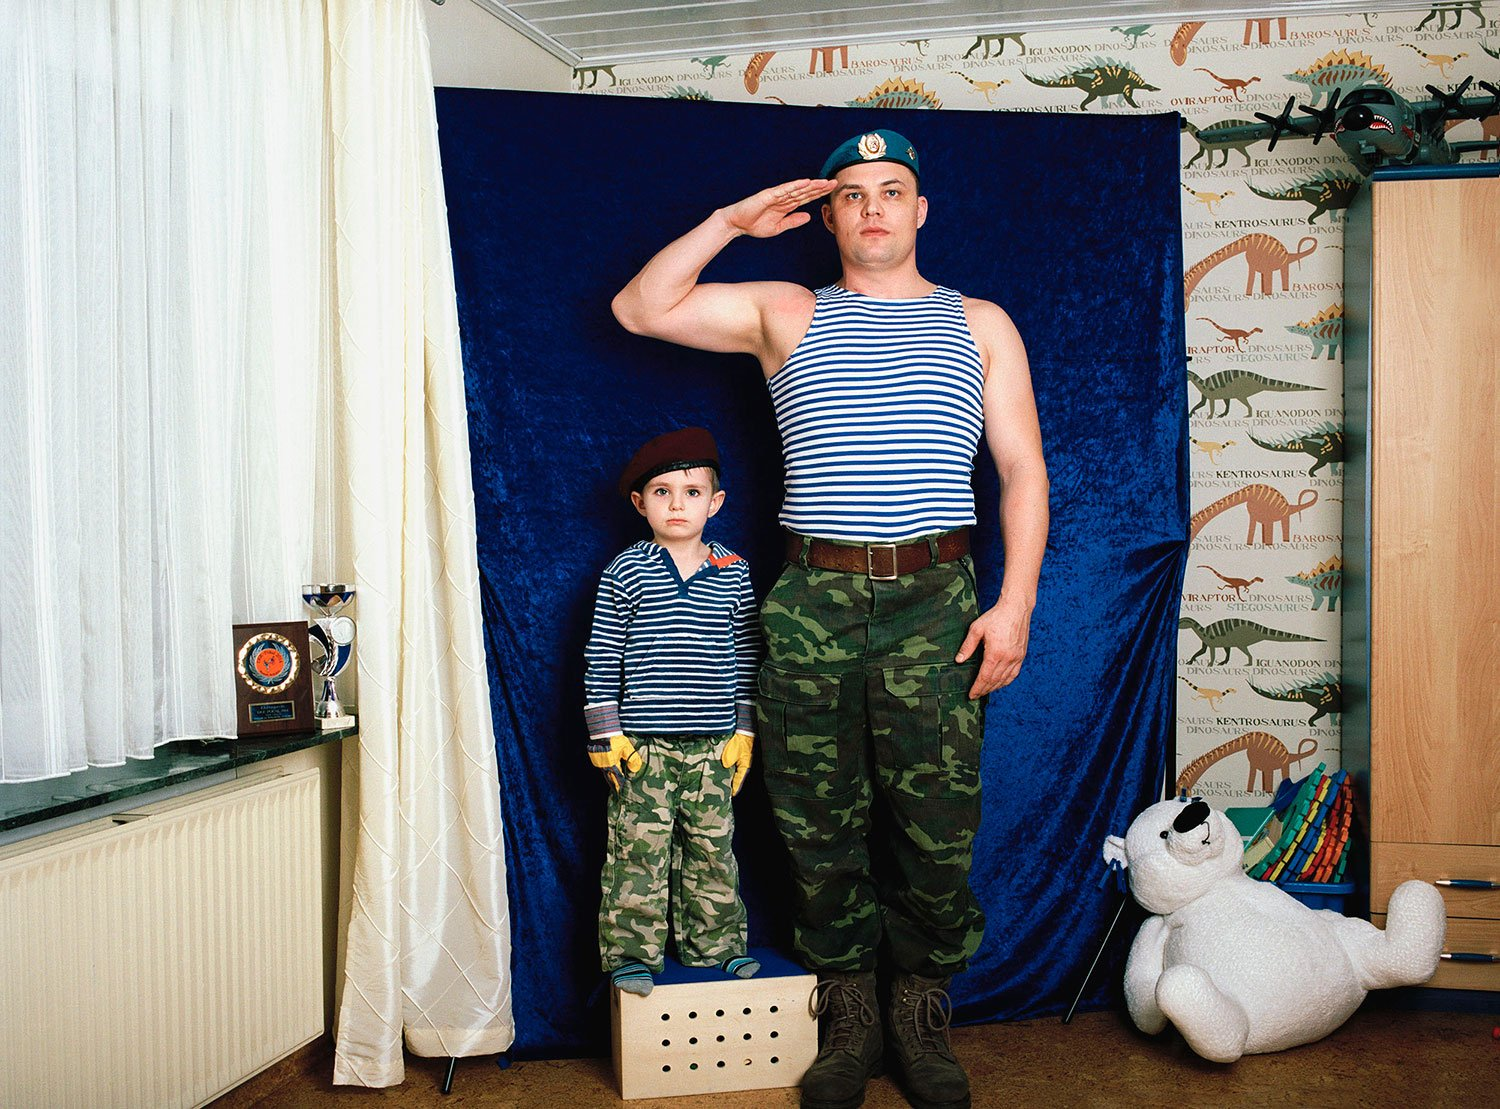 No place like home: meet the people caught between Germany and Russia